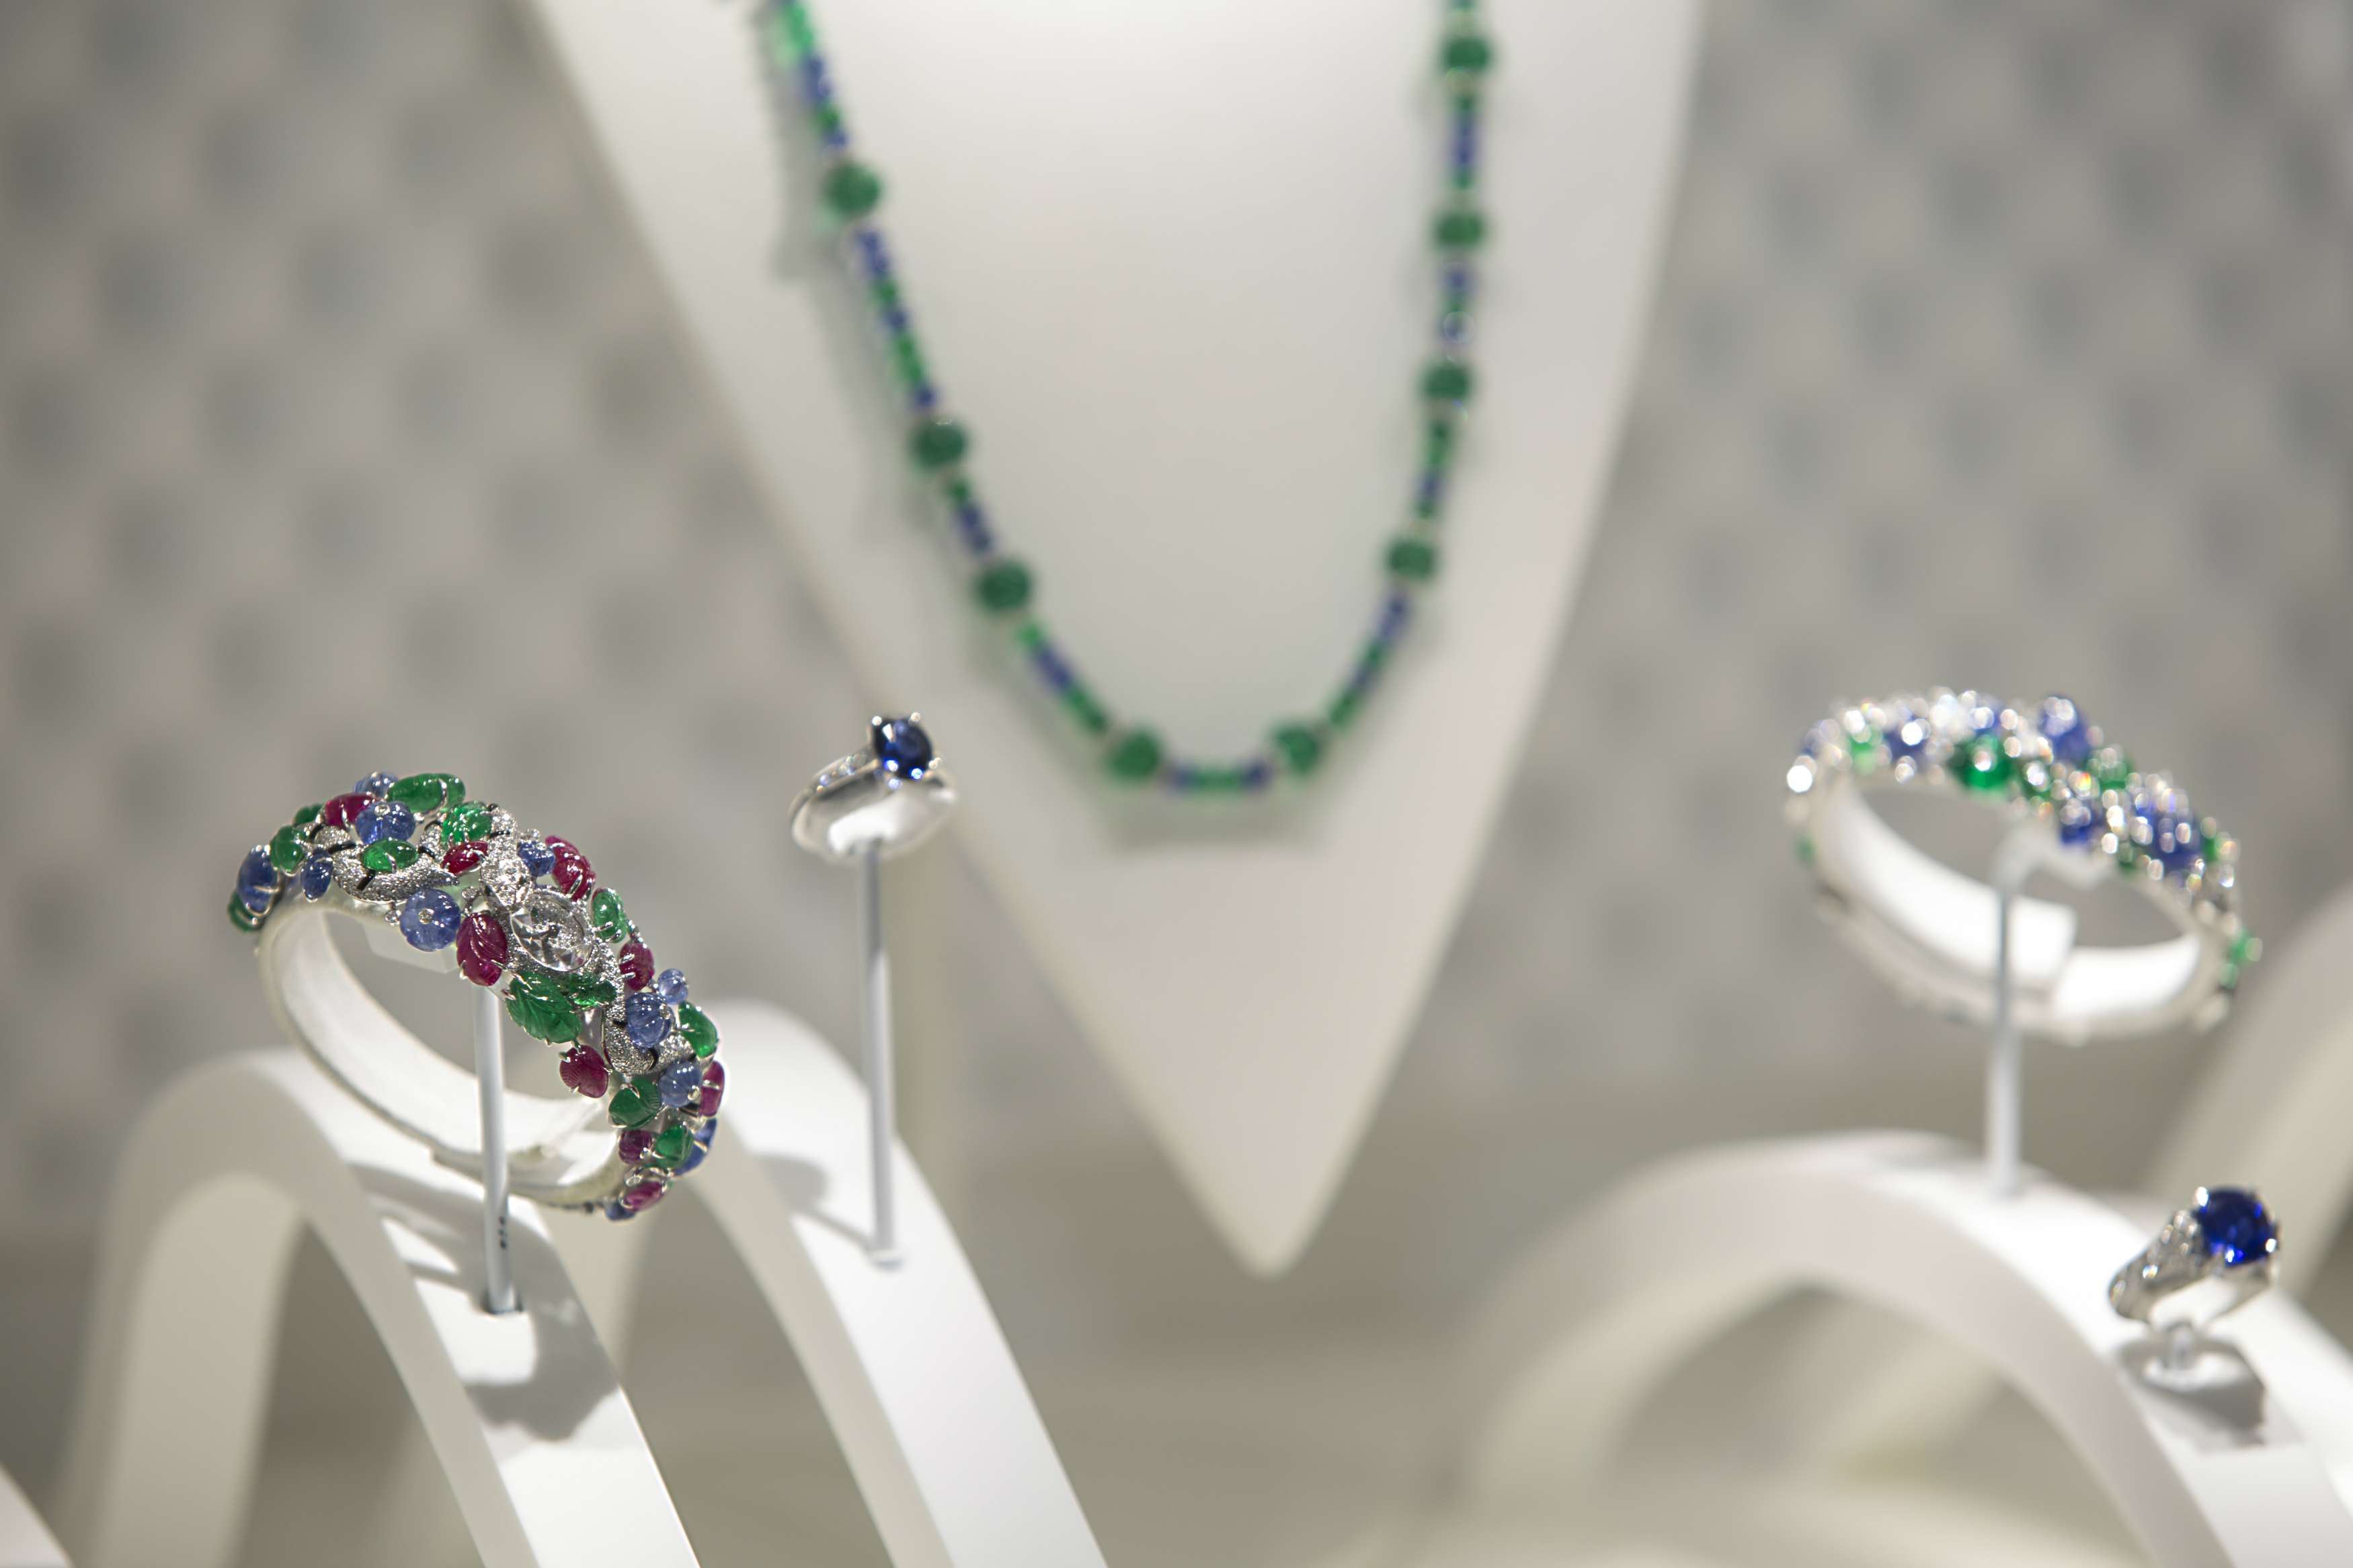 Richemont said that Cartier's Love and Juste Un Clou motifs were among the designs copied.